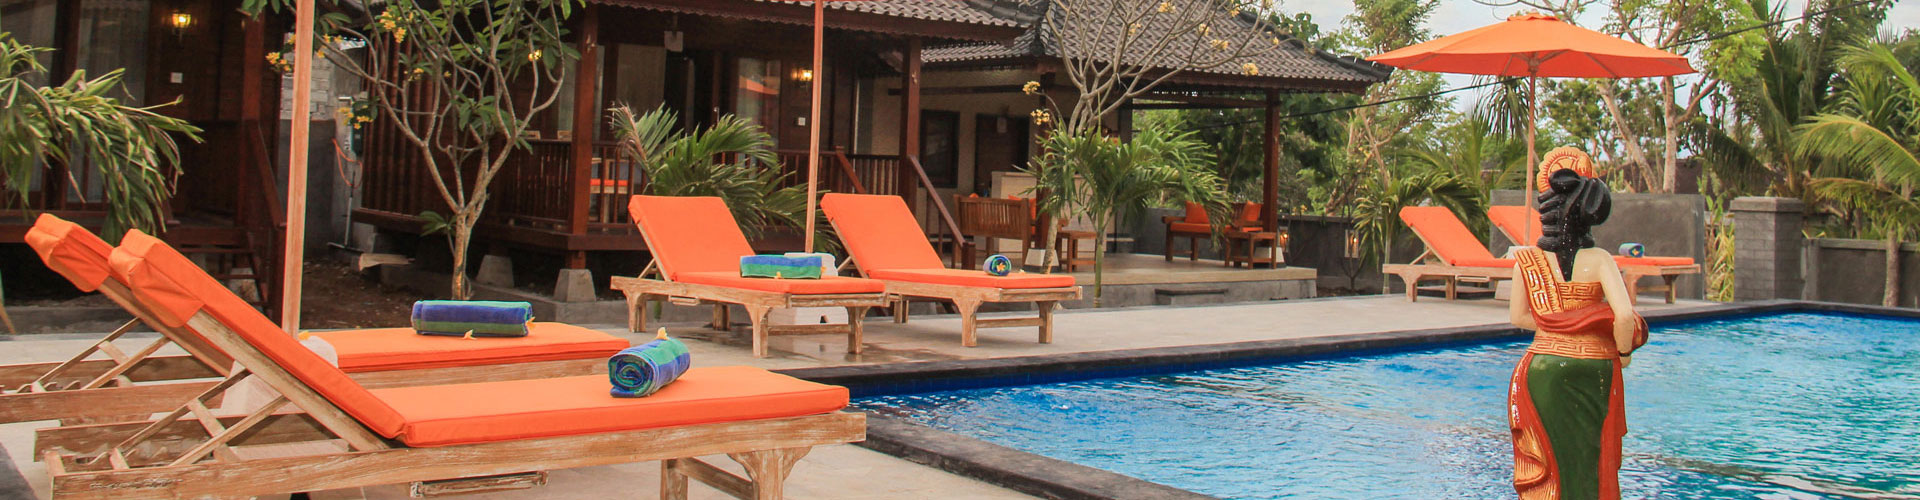 Bali Villas, Lembongan Villas - Things To Do